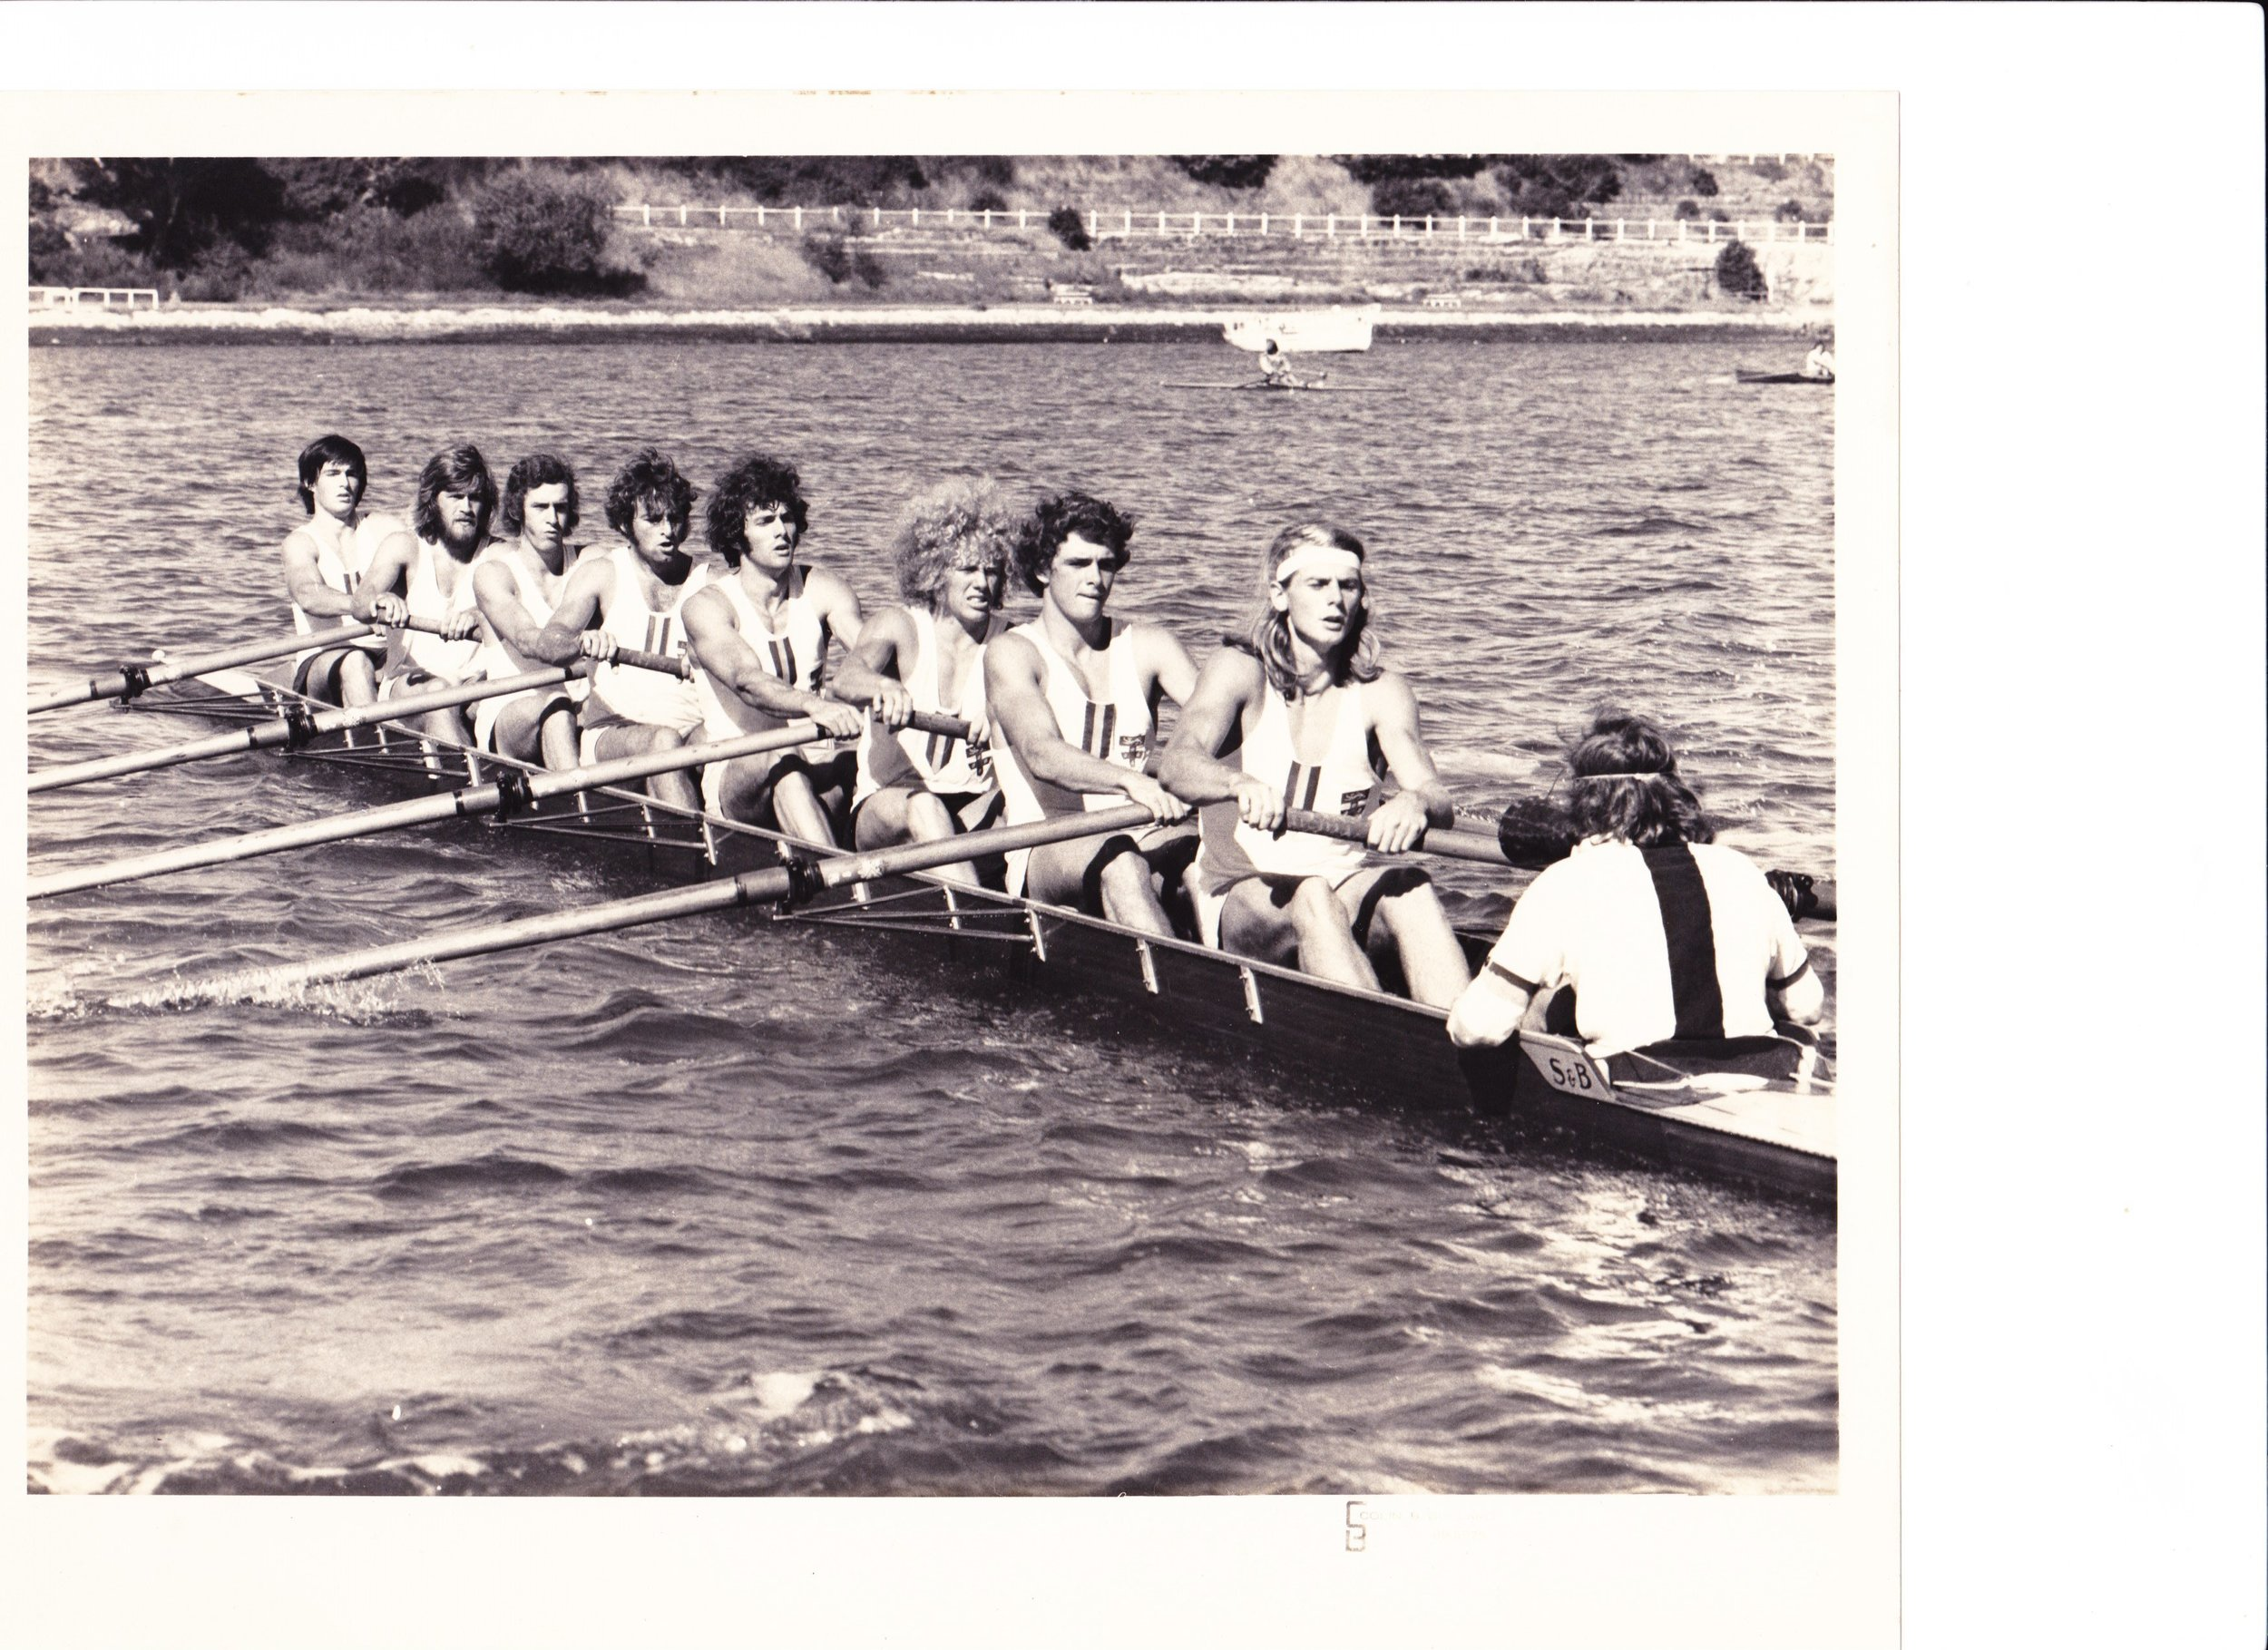 SUBC Eight circa 1973 Shinners Newnham O Loughlin Stiel Welch Plater Roberts Curtin - Donnelly cox